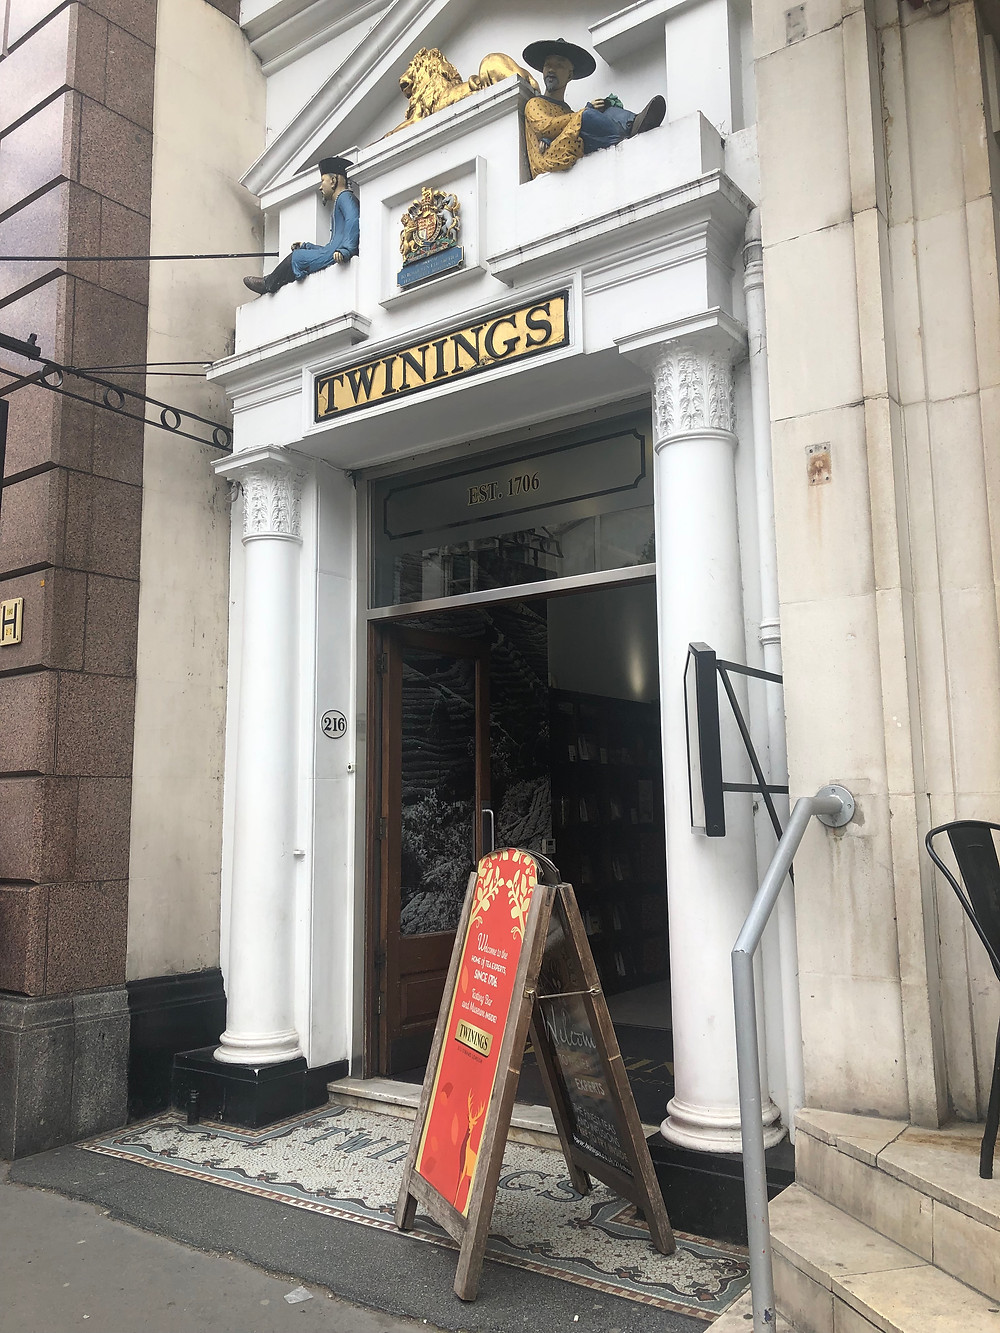 Twinings storefront on Strand